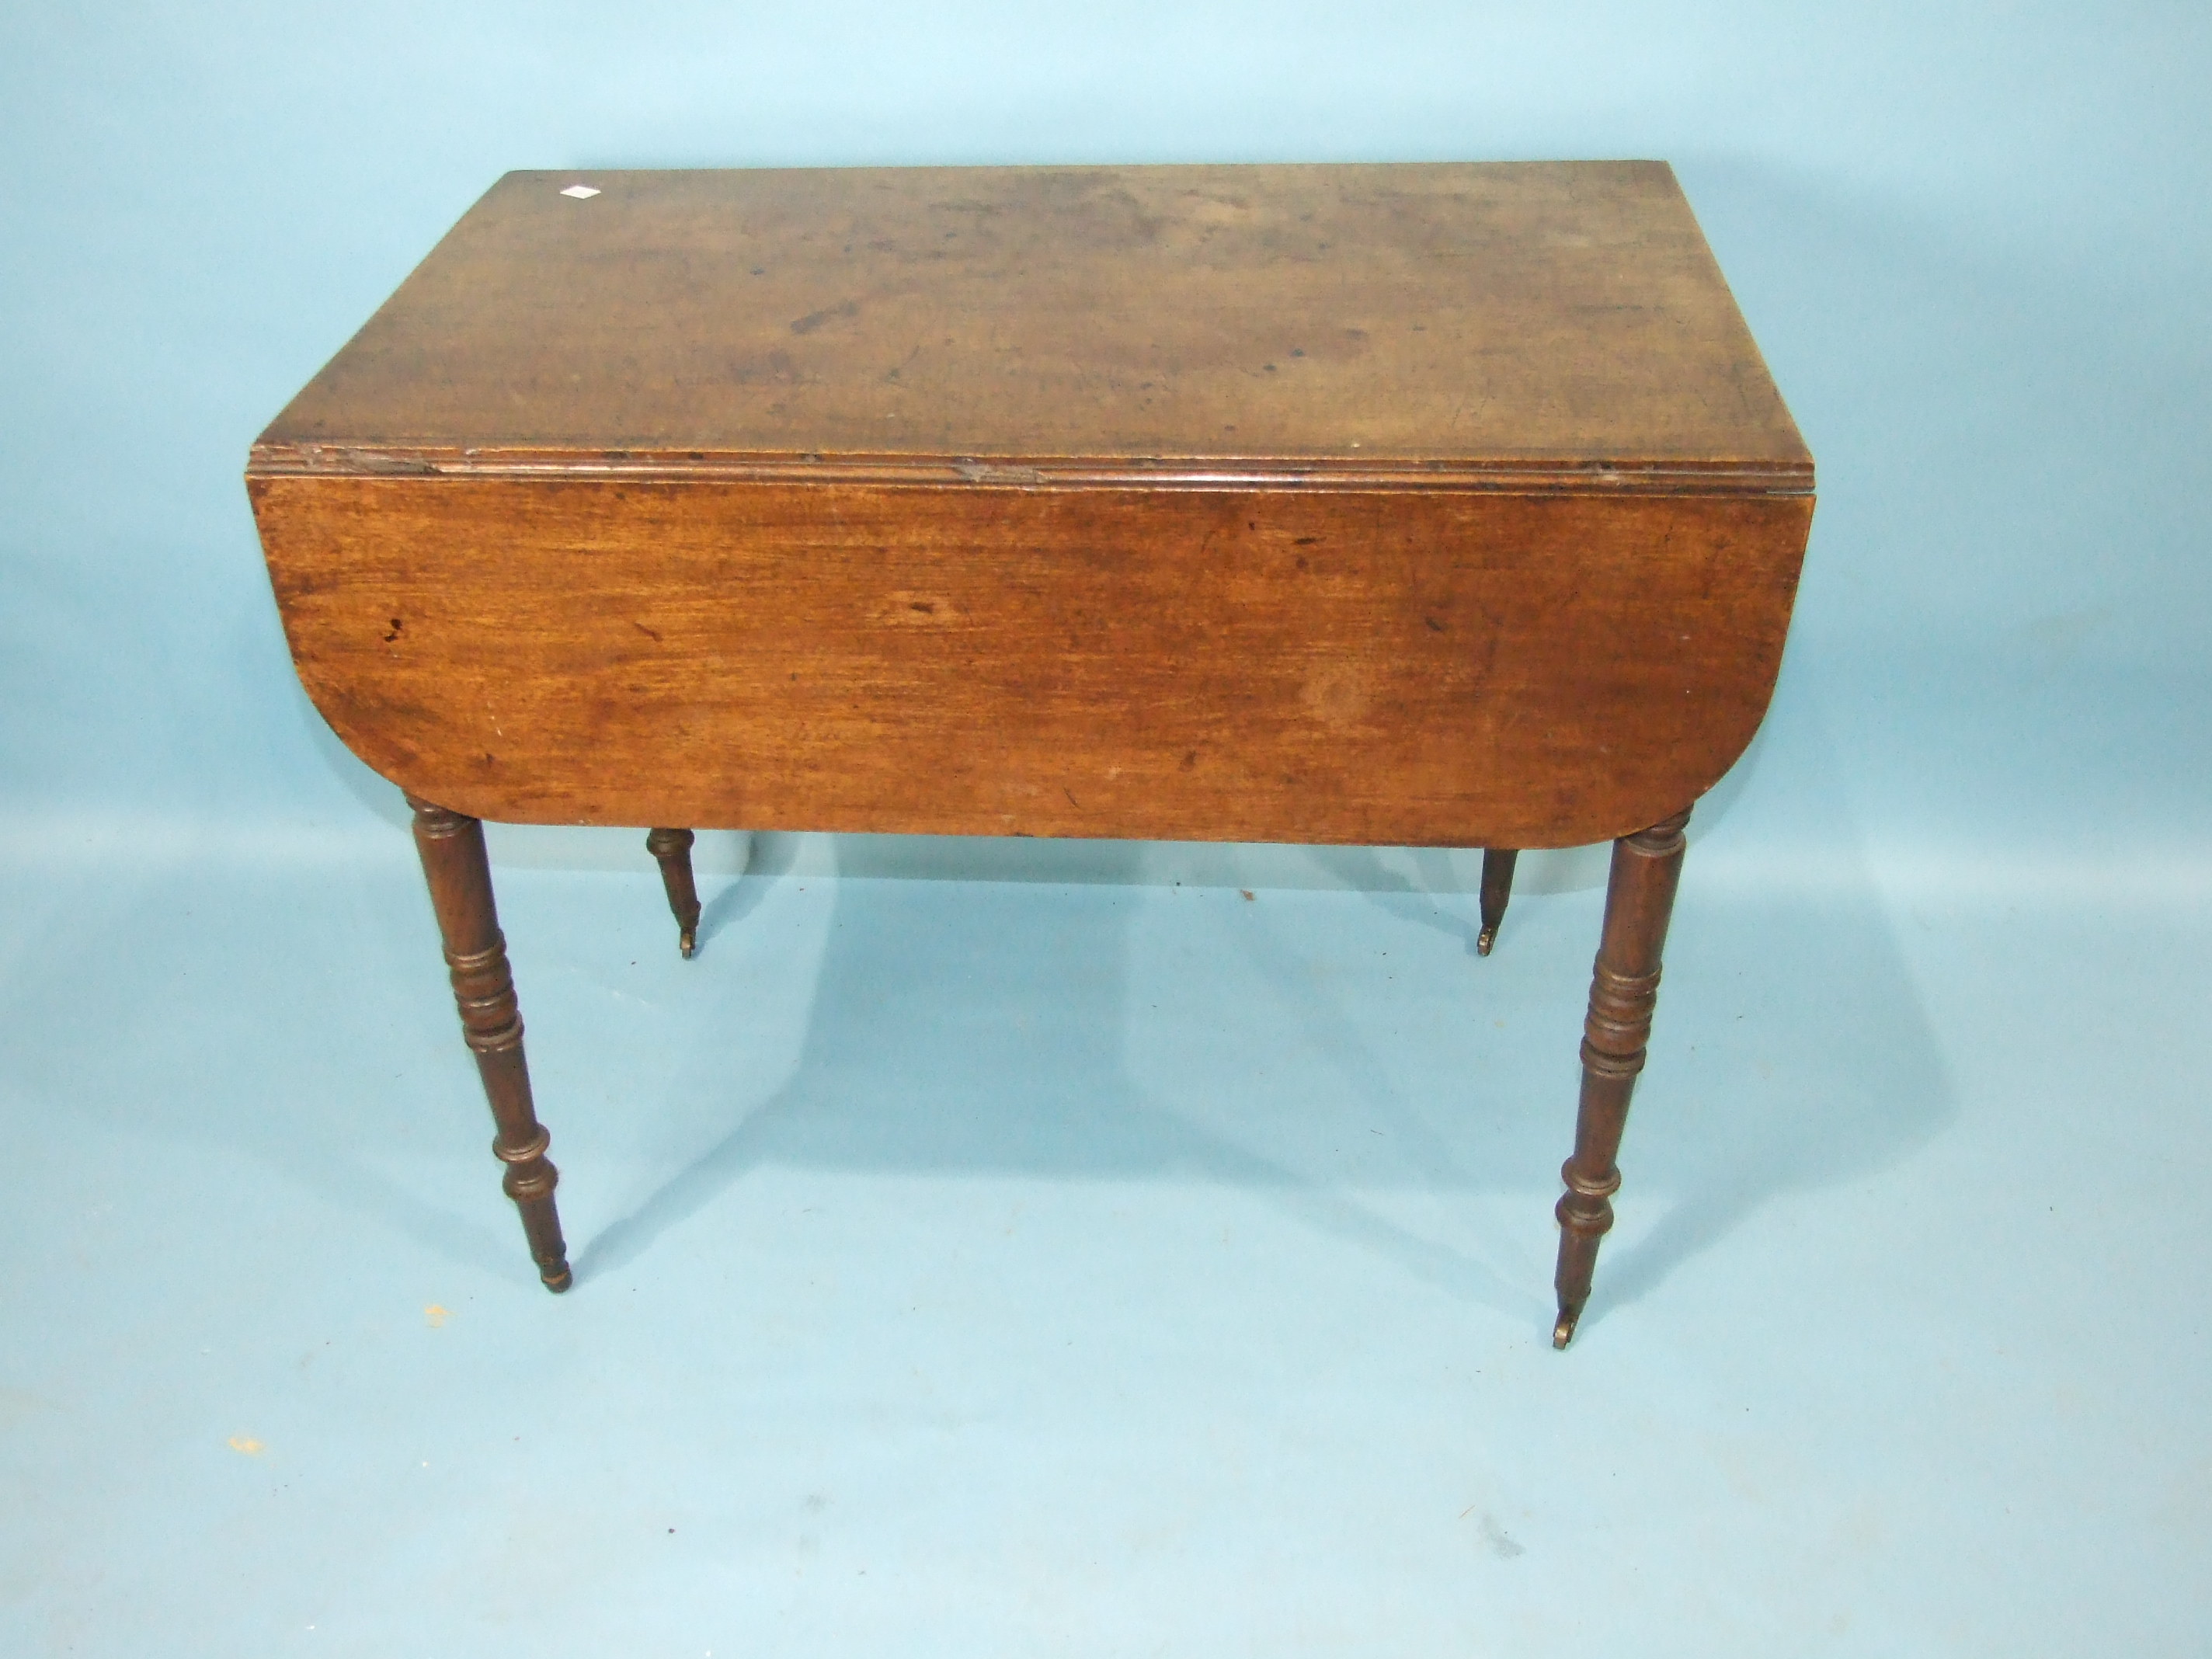 A Victorian mahogany three-tier whatnot on turned legs with castors, 73cm wide, 96cm high, a - Image 3 of 3